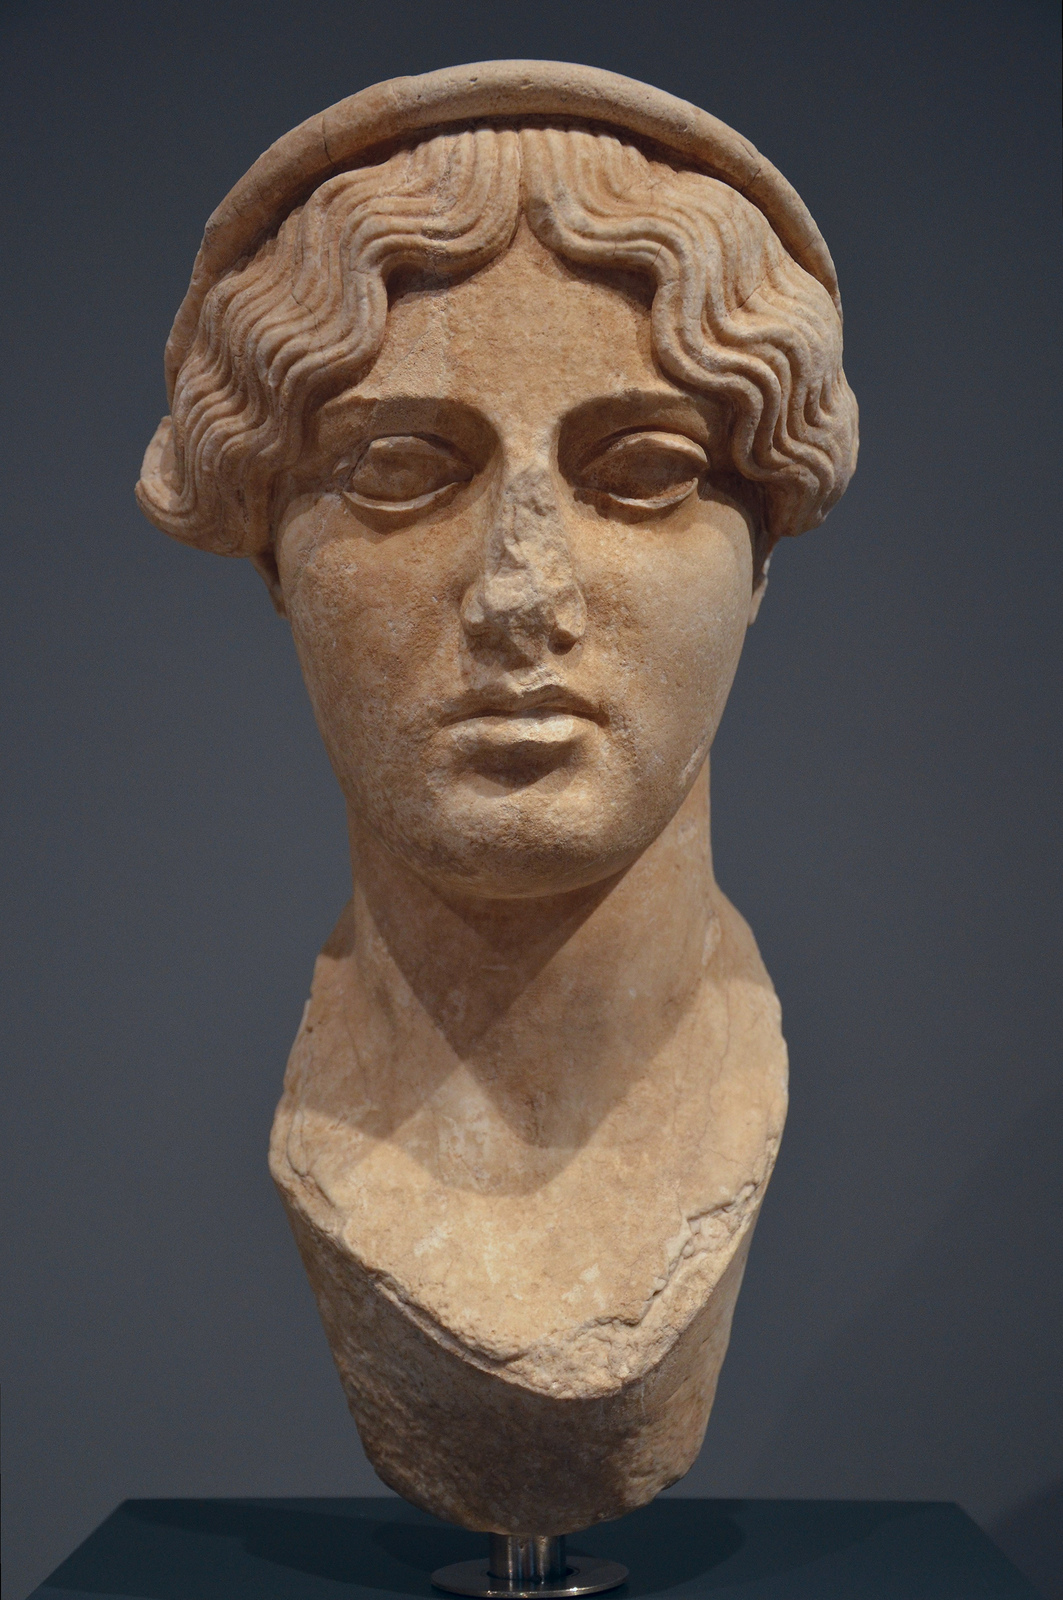 Art and sculptures from Hadrian's Villa: Head of a diademed goddess